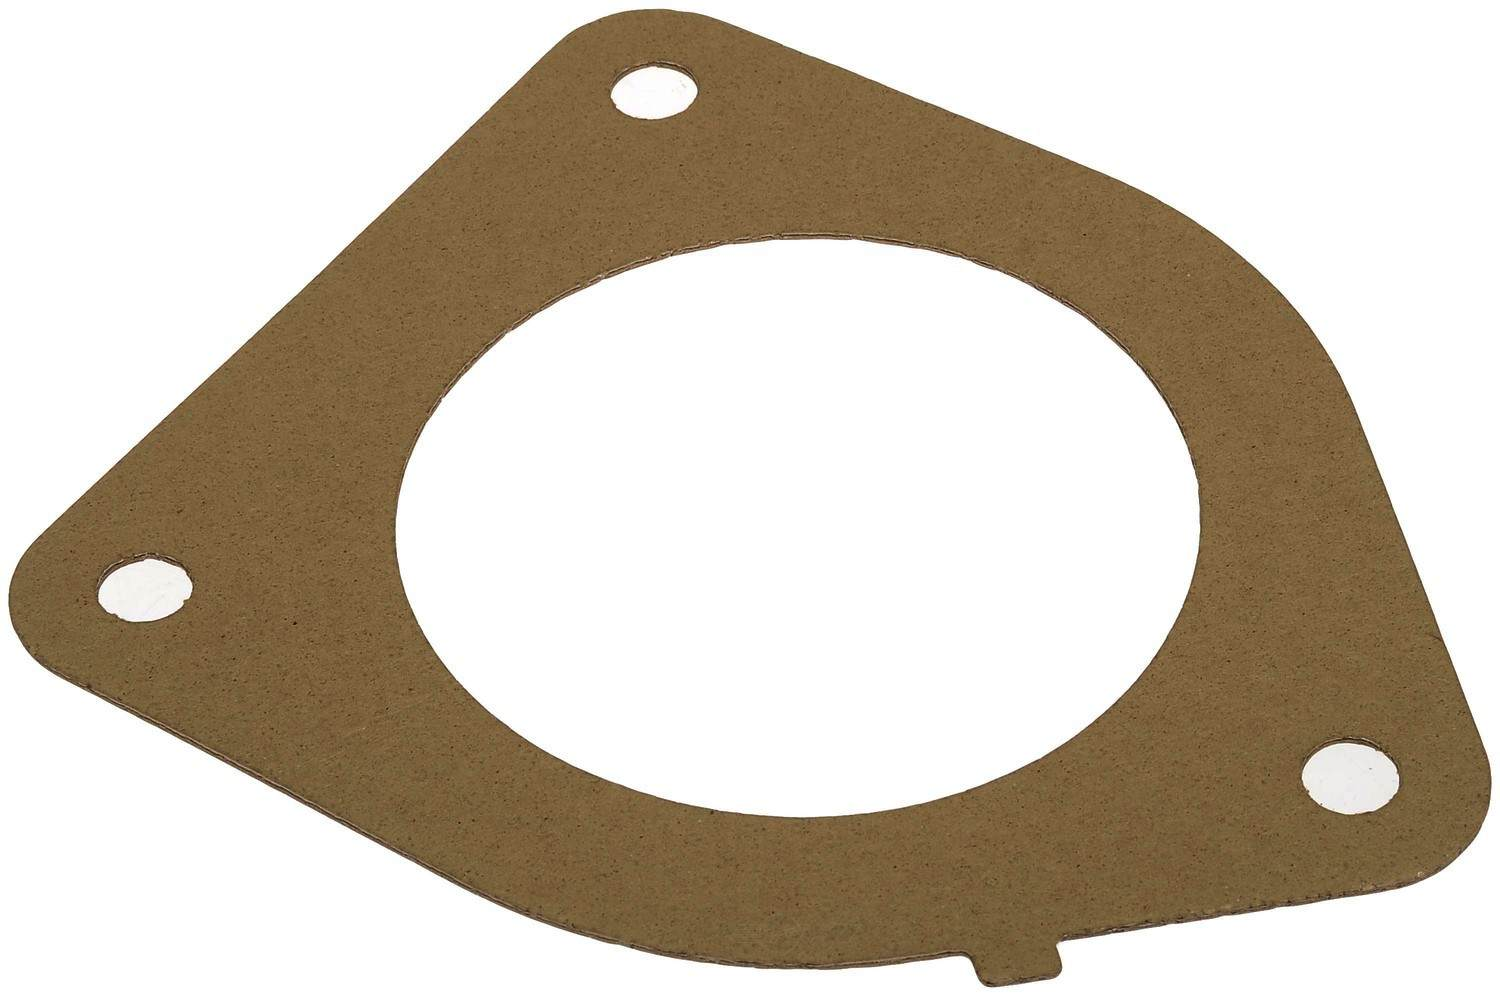 DORMAN - HD SOLUTIONS - Diesel Particulate Filter (DPF) Gasket - DHD 674-9009